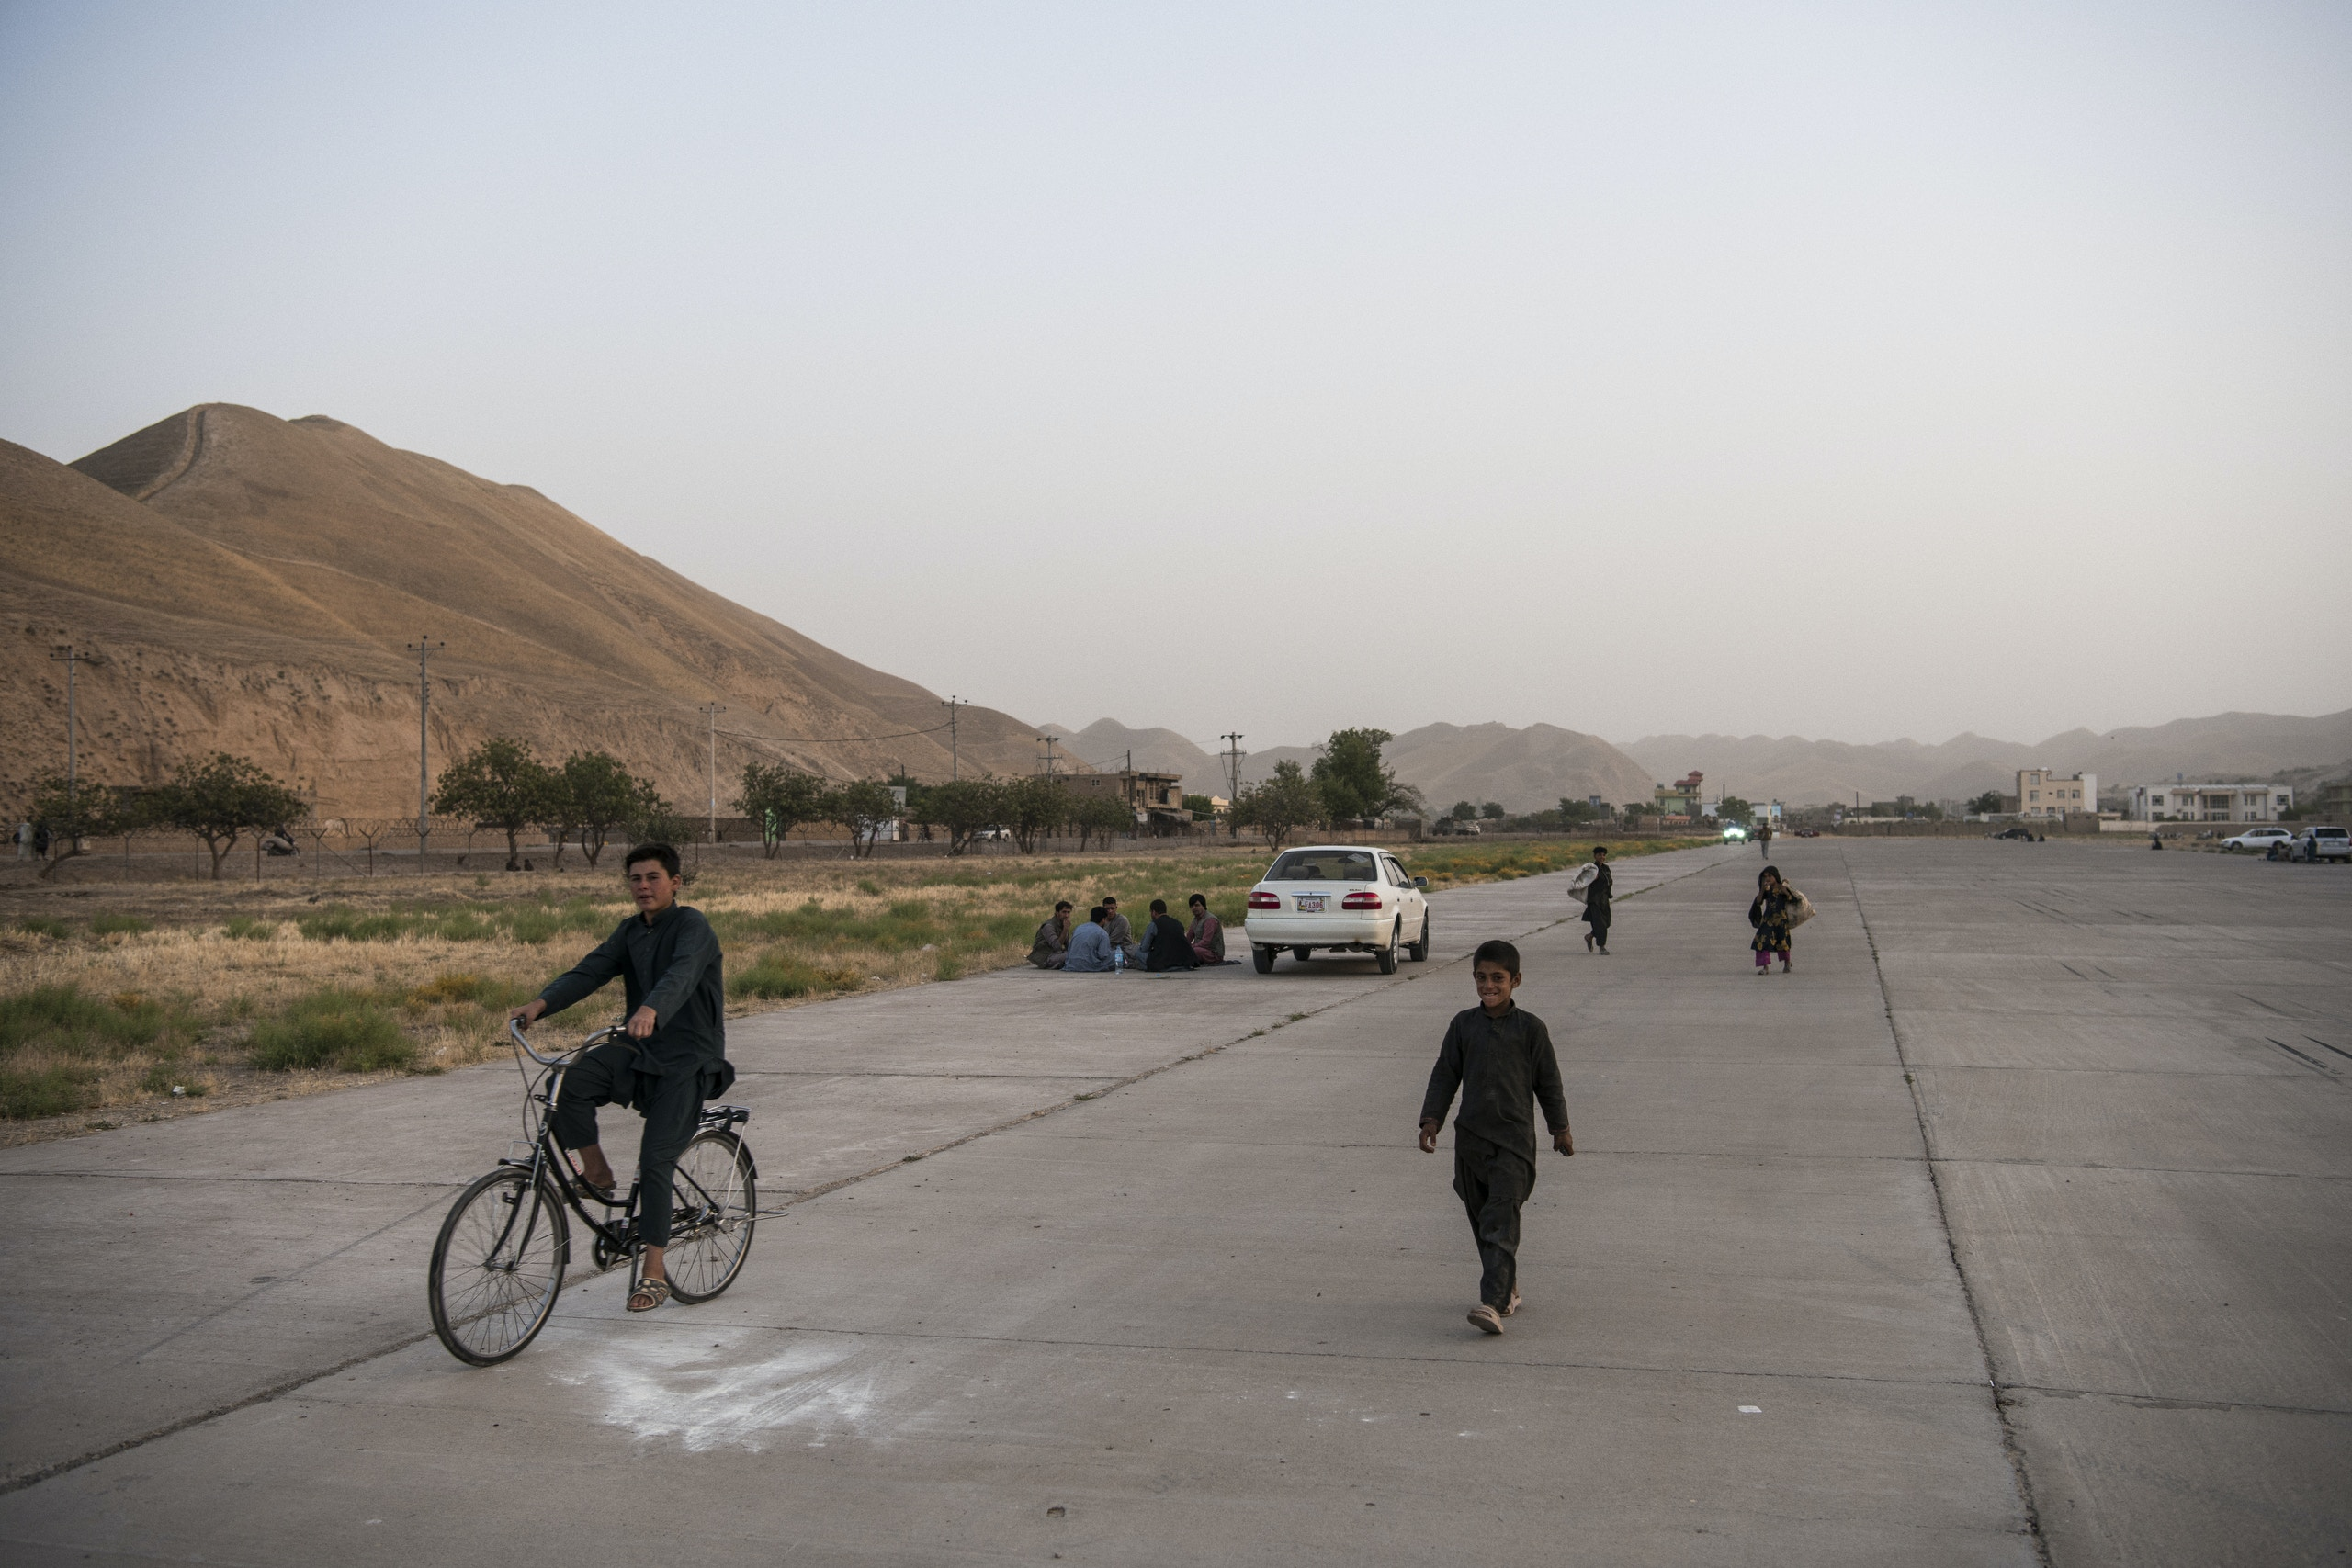 The runway at Qala-e-Naw airport, which is only used by military and humanitarian carriers nowadays and, when not in used, is open to resident of Qala-e-Naw, who use it as a setting for picnics in the afternoons, especially on the weekends. In recent weeks, as the Taliban has pushed closer toward Qala-e-Naw from outlying districts, residents who used to picnic on the city's outskirts and other districts are staying closer to home for such leisure activities. The runway is one such place being utilised.